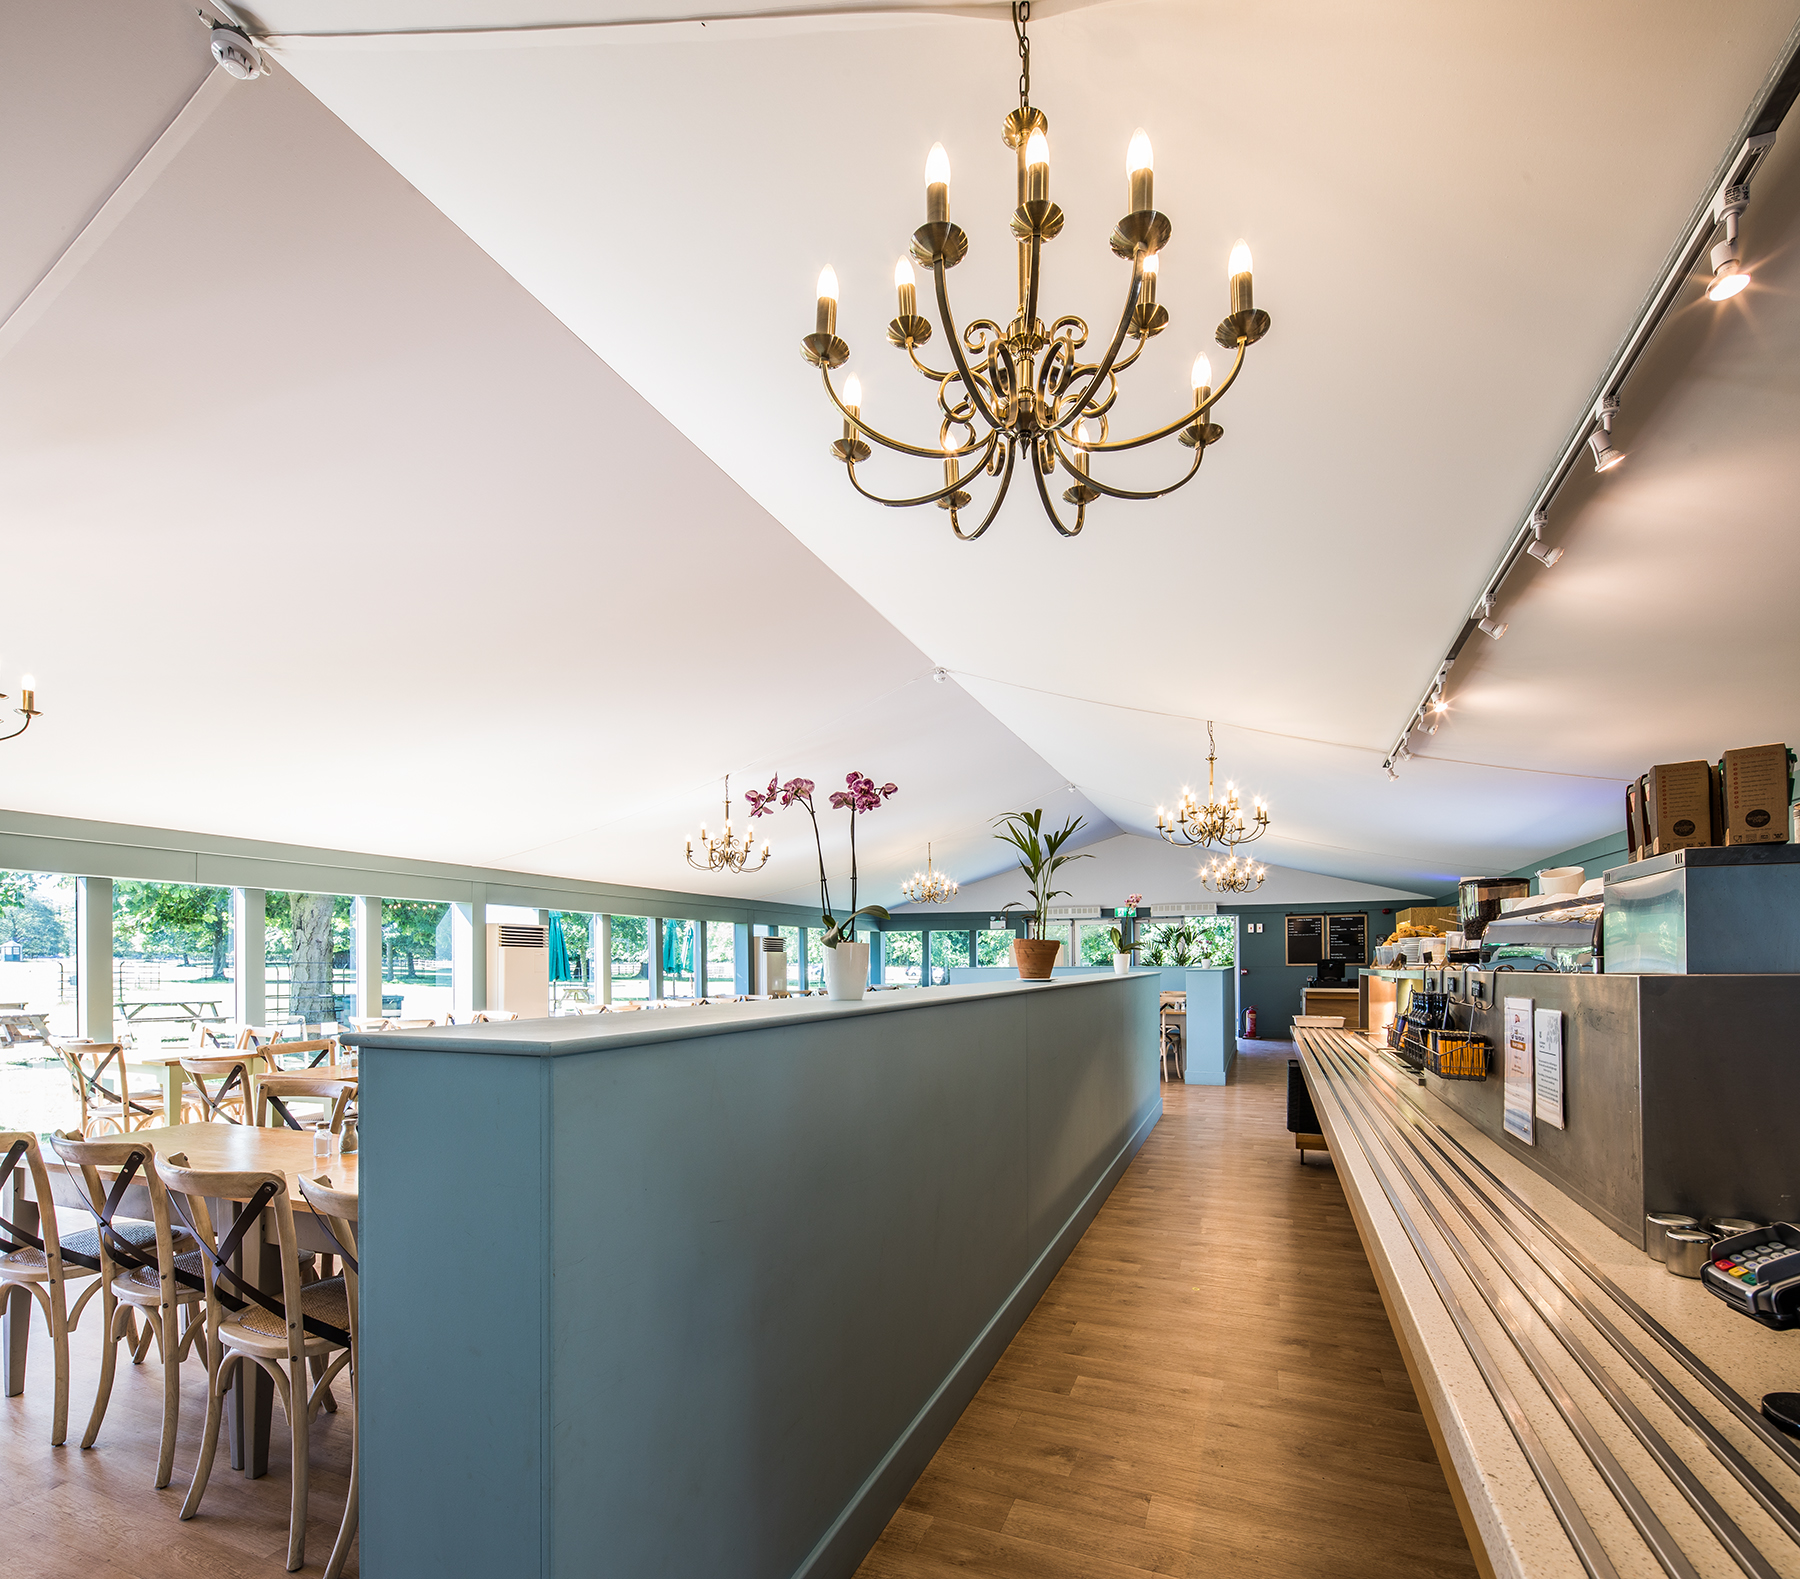 Deboer, Grantham, Cafe, Interior photography, architecture photography, temporary structure, Midlands